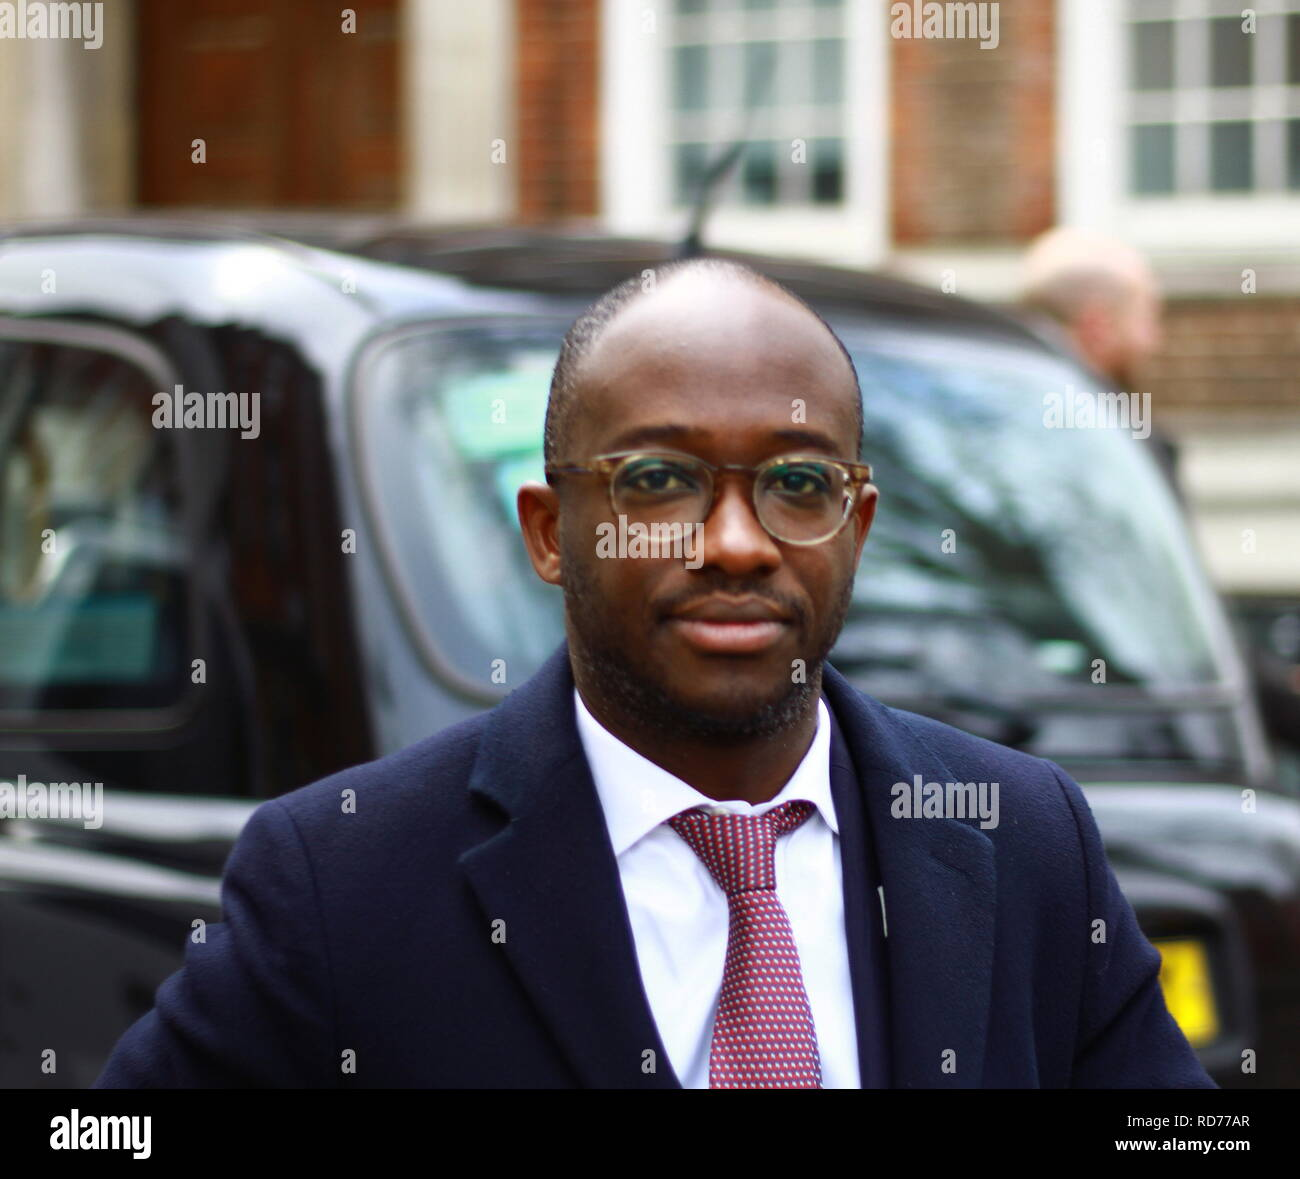 Sam Gyimah Minister of State for Universities, Science, research and innovation in Westminster on 15th January 2019. Conservative party politician MP for East Surrey 2010. Was Parliamentary Private secretary to the Prime Minister David Cameron. British politics. - Stock Image